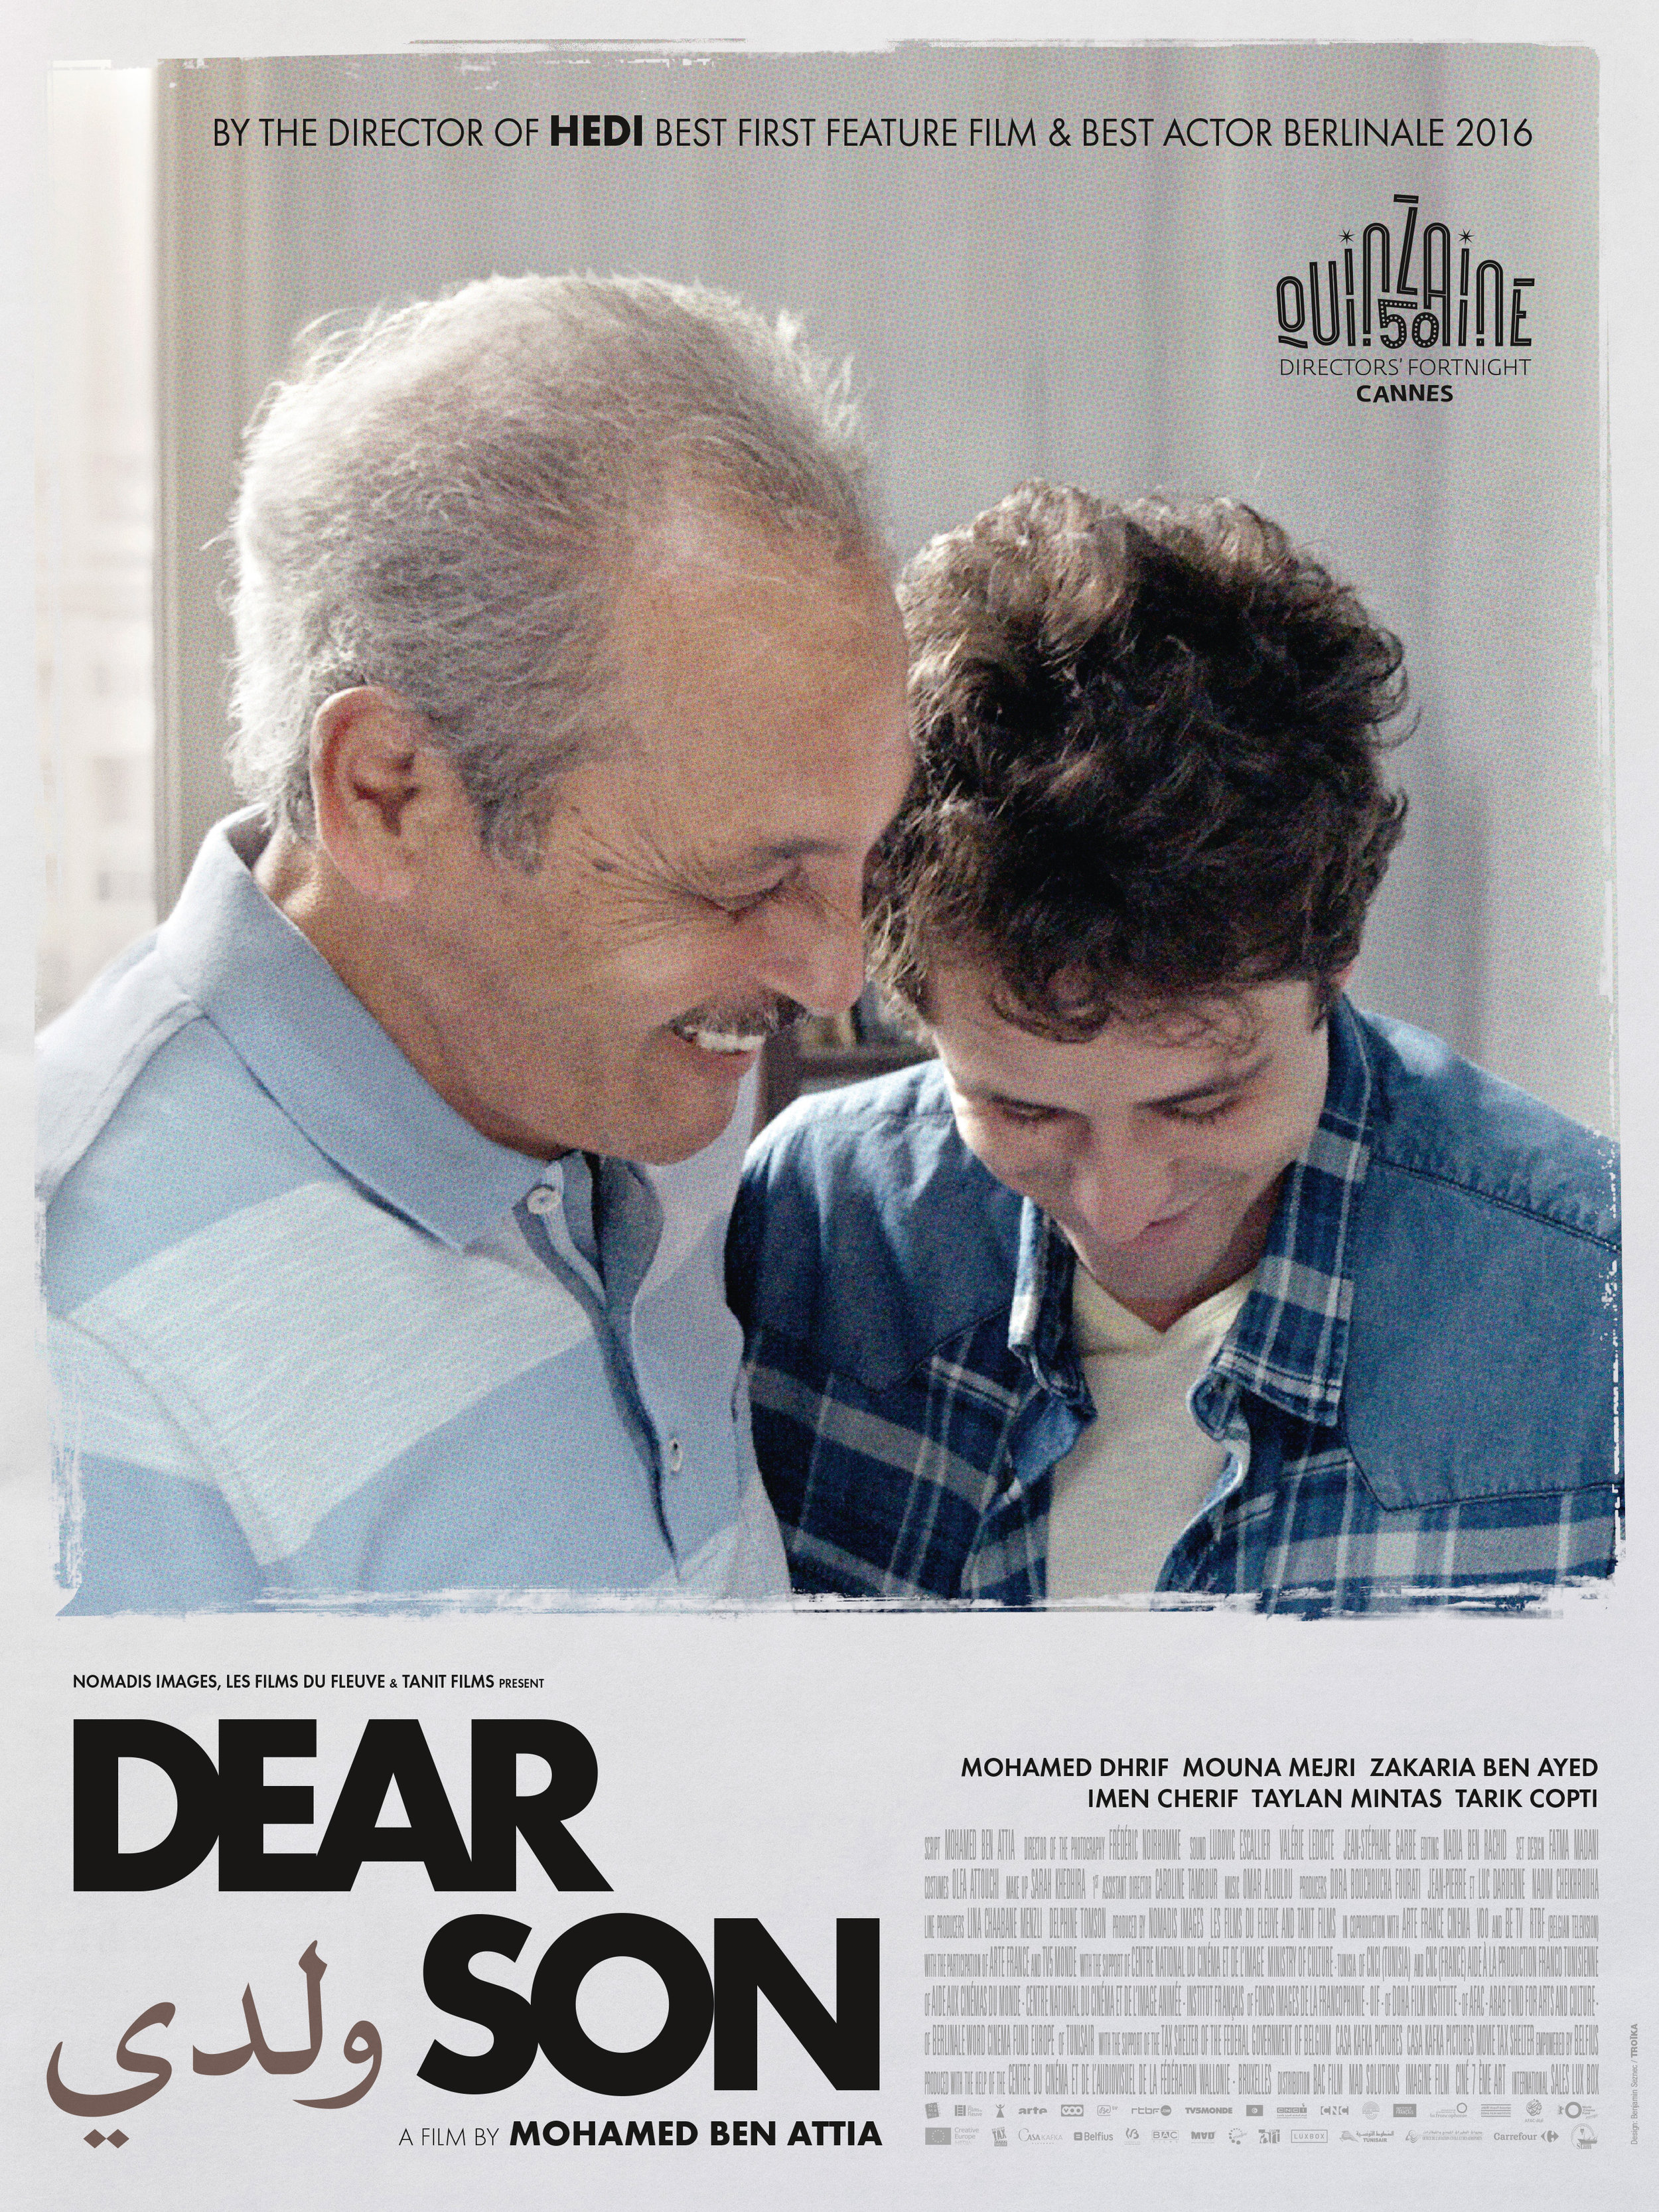 DEAR SON by Mohamed Ben Attia